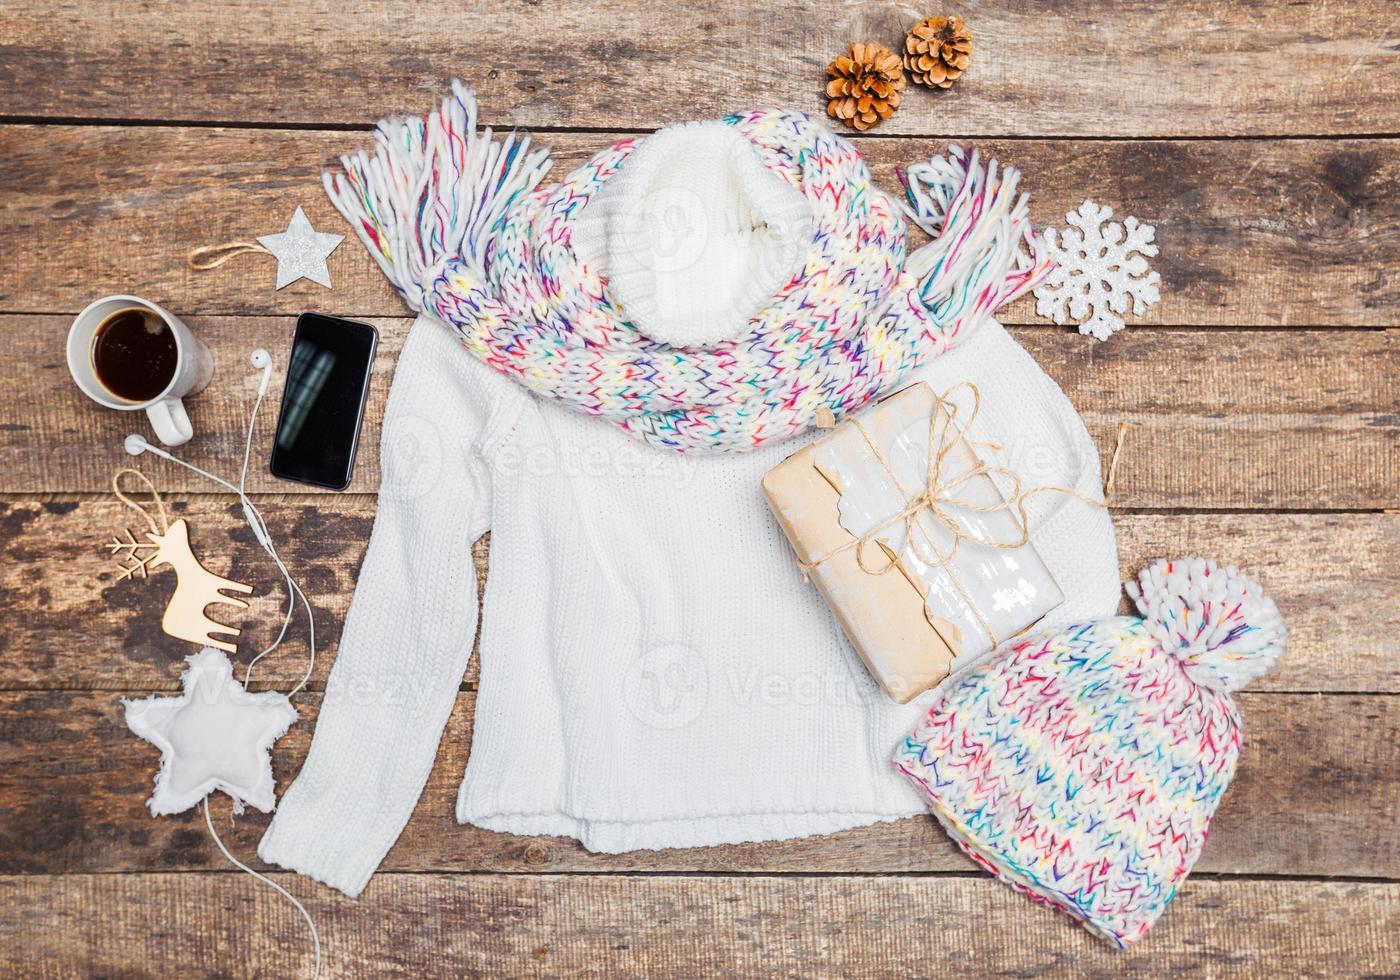 Winter clothes on wooden background. photo